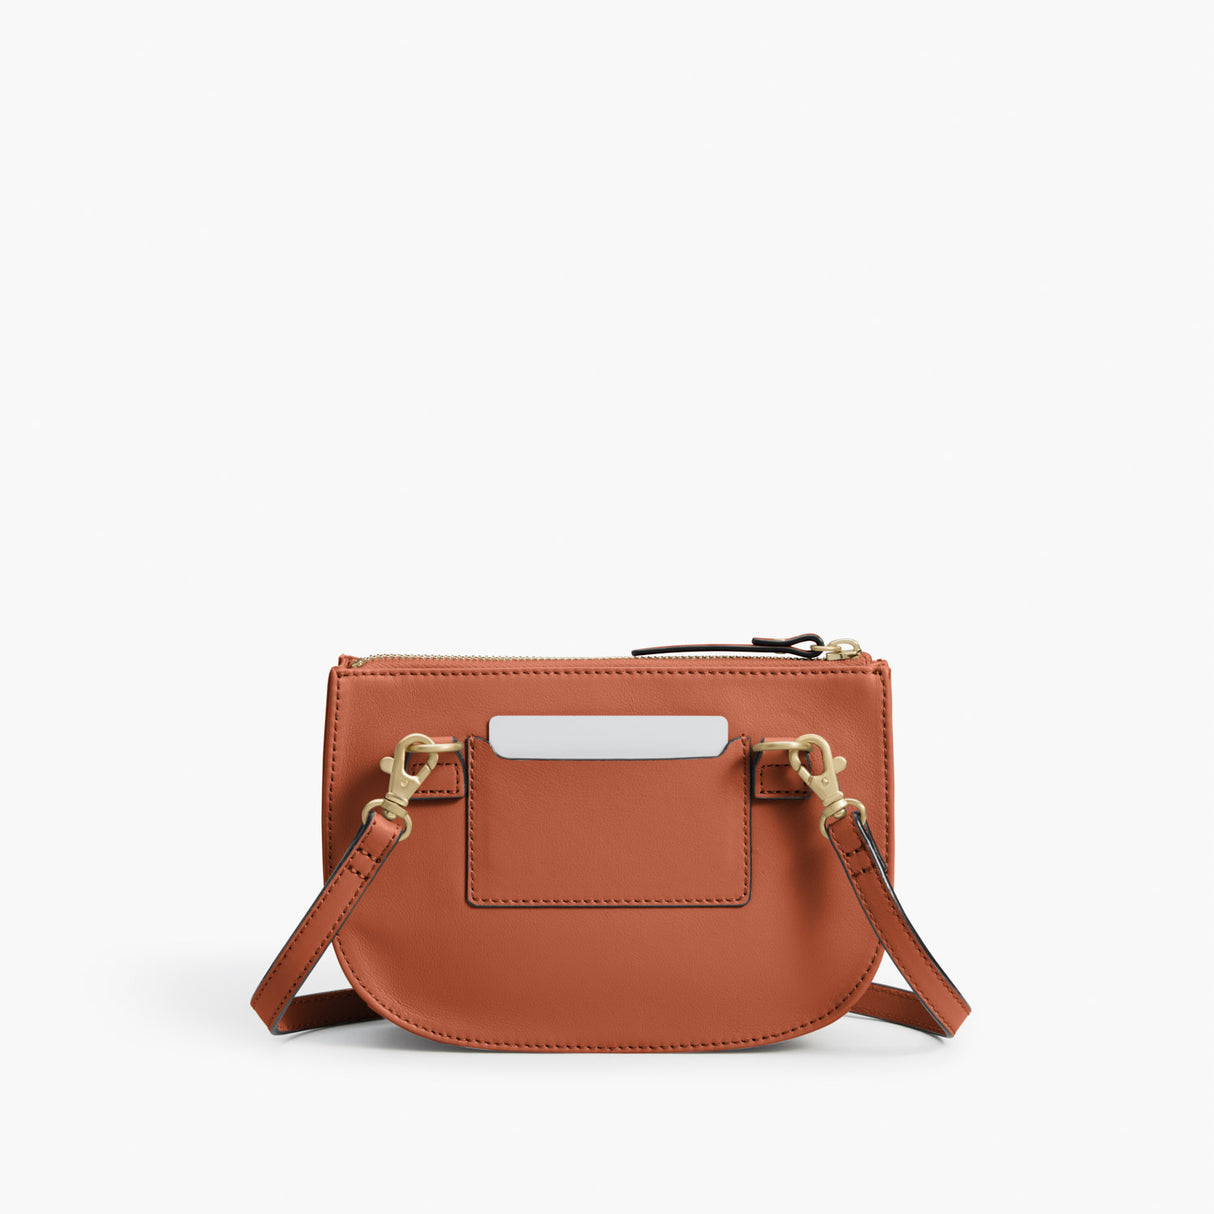 Back - The Waverley 2 - Nappa Leather - Sienna / Gold / Camel - Crossbody - Lo & Sons